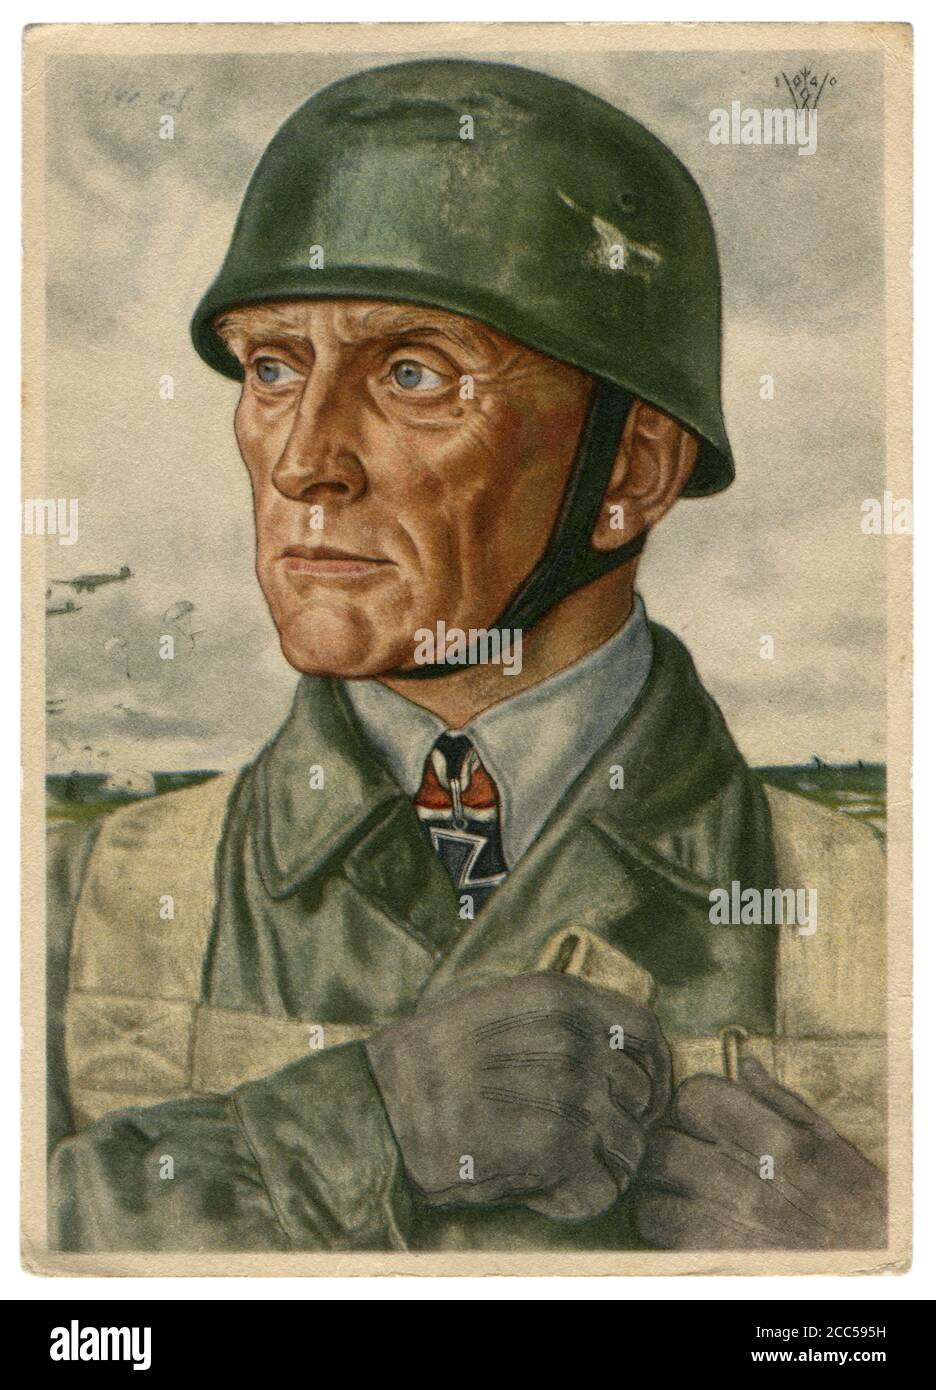 German historical postcard: Bruno Bräuer, colonel of the paratroopers, awarded Knight's Cross of the Iron Cross, artist Wolfgang Willrich, 1940 Stock Photo